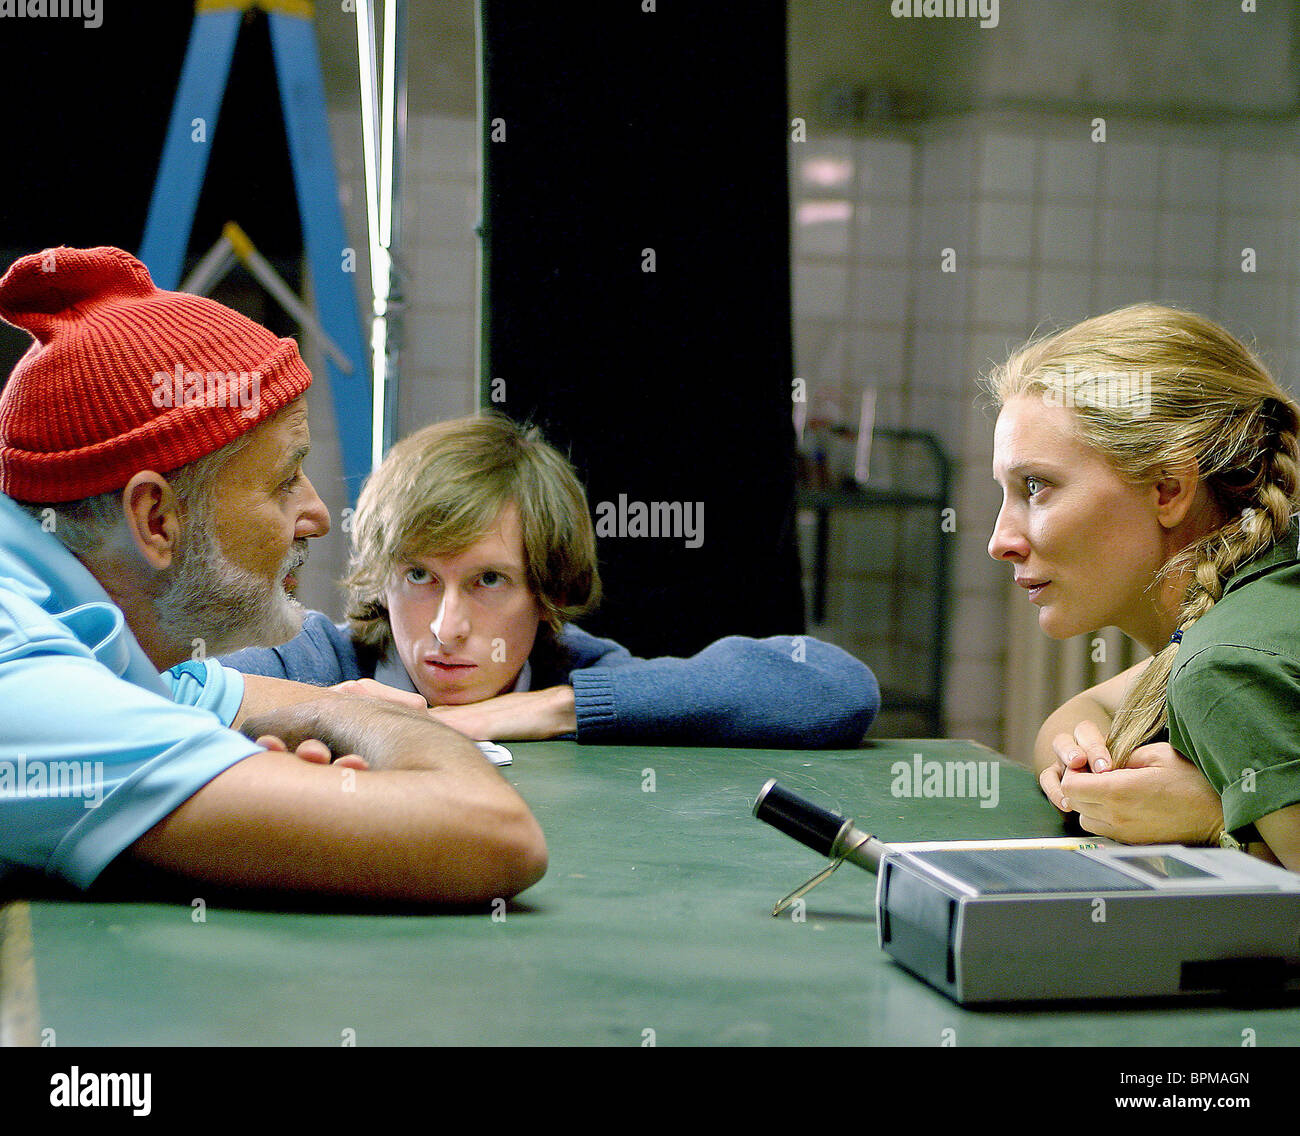 d8c9bc985b44d3 BILL MURRAY WES ANDERSON   CATE BLANCHETT THE LIFE AQUATIC WITH STEVE ZISSOU  (2004)